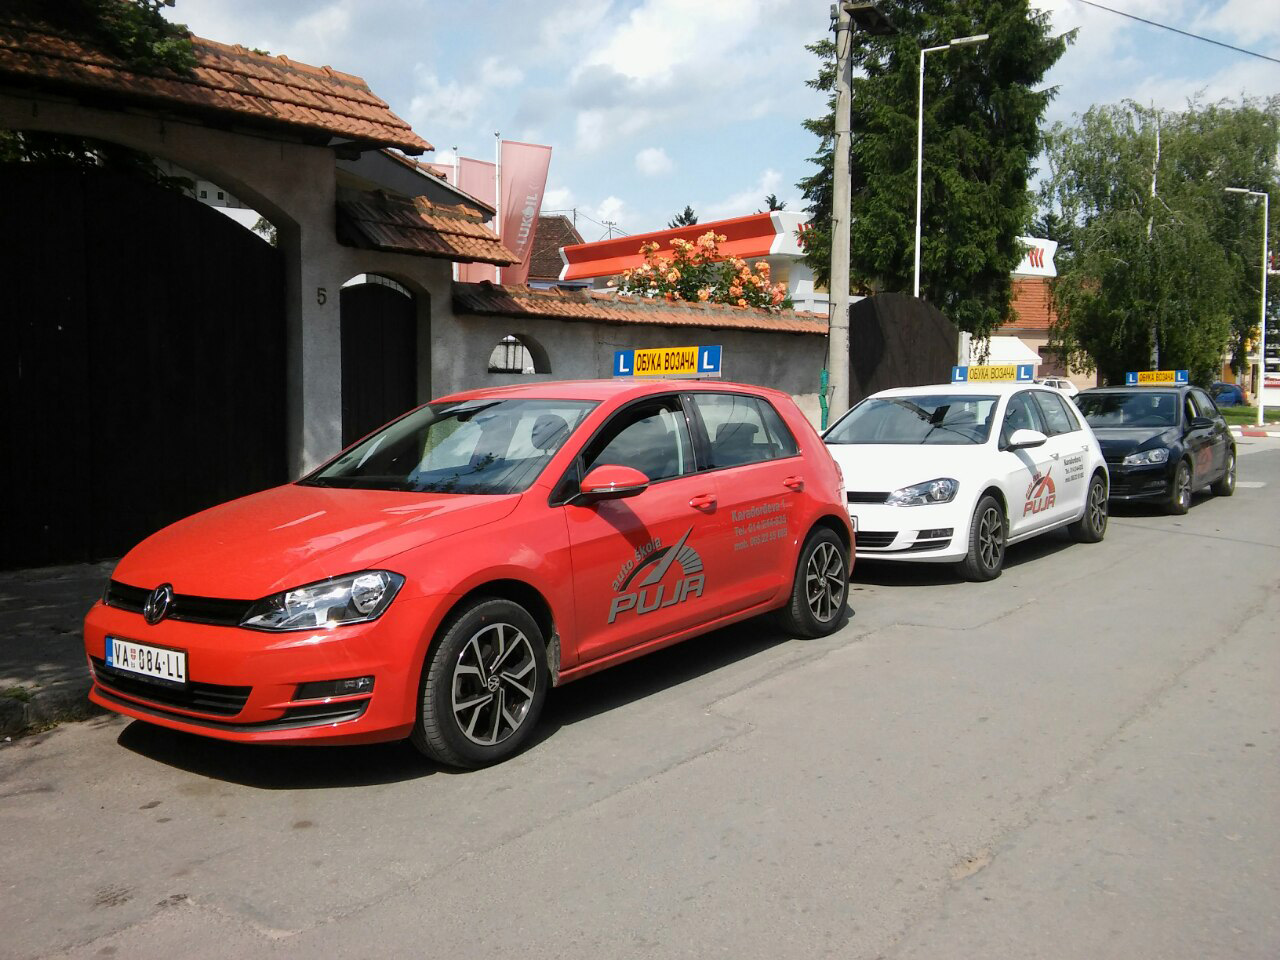 TOWING SERVICE AND DRIVING SCHOOL PUJA Towing services Valjevo - Photo 2